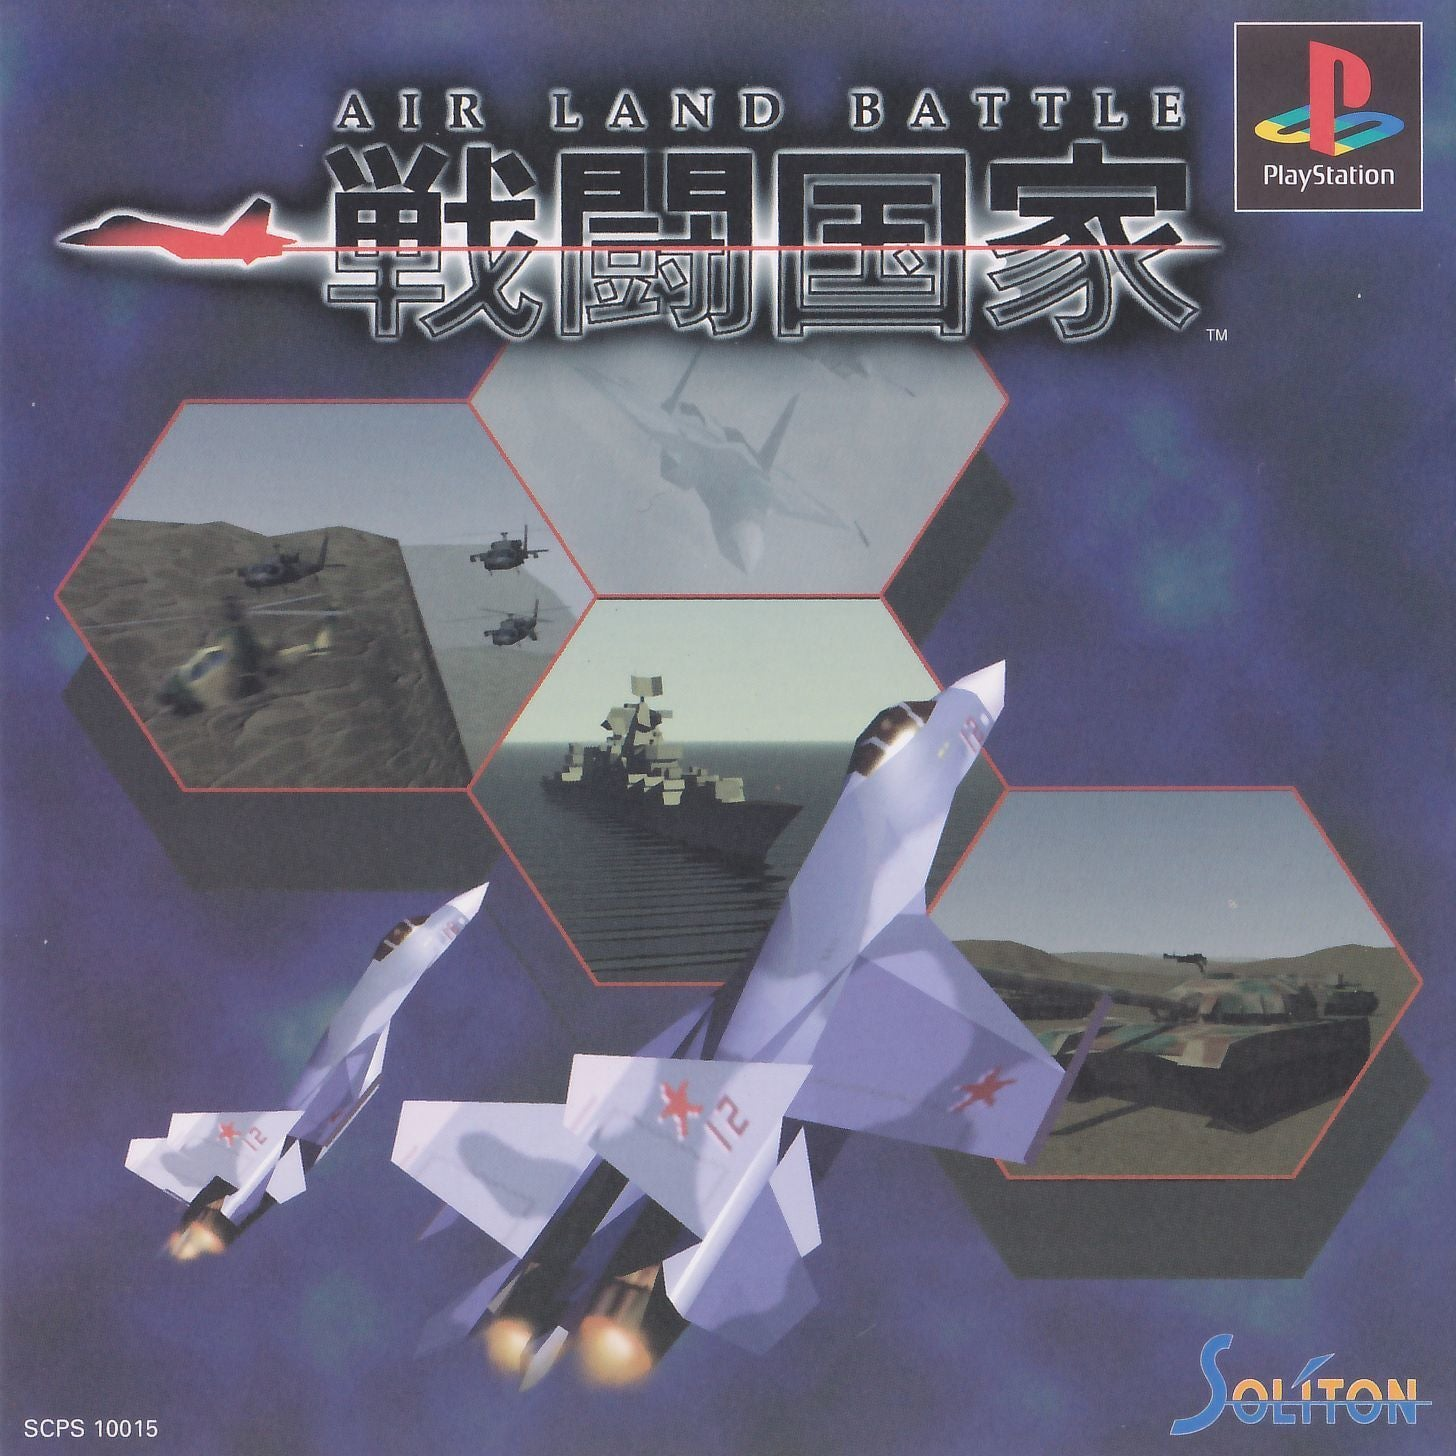 Sentou Kokka: Air Land Battle - PlayStation (Japan)